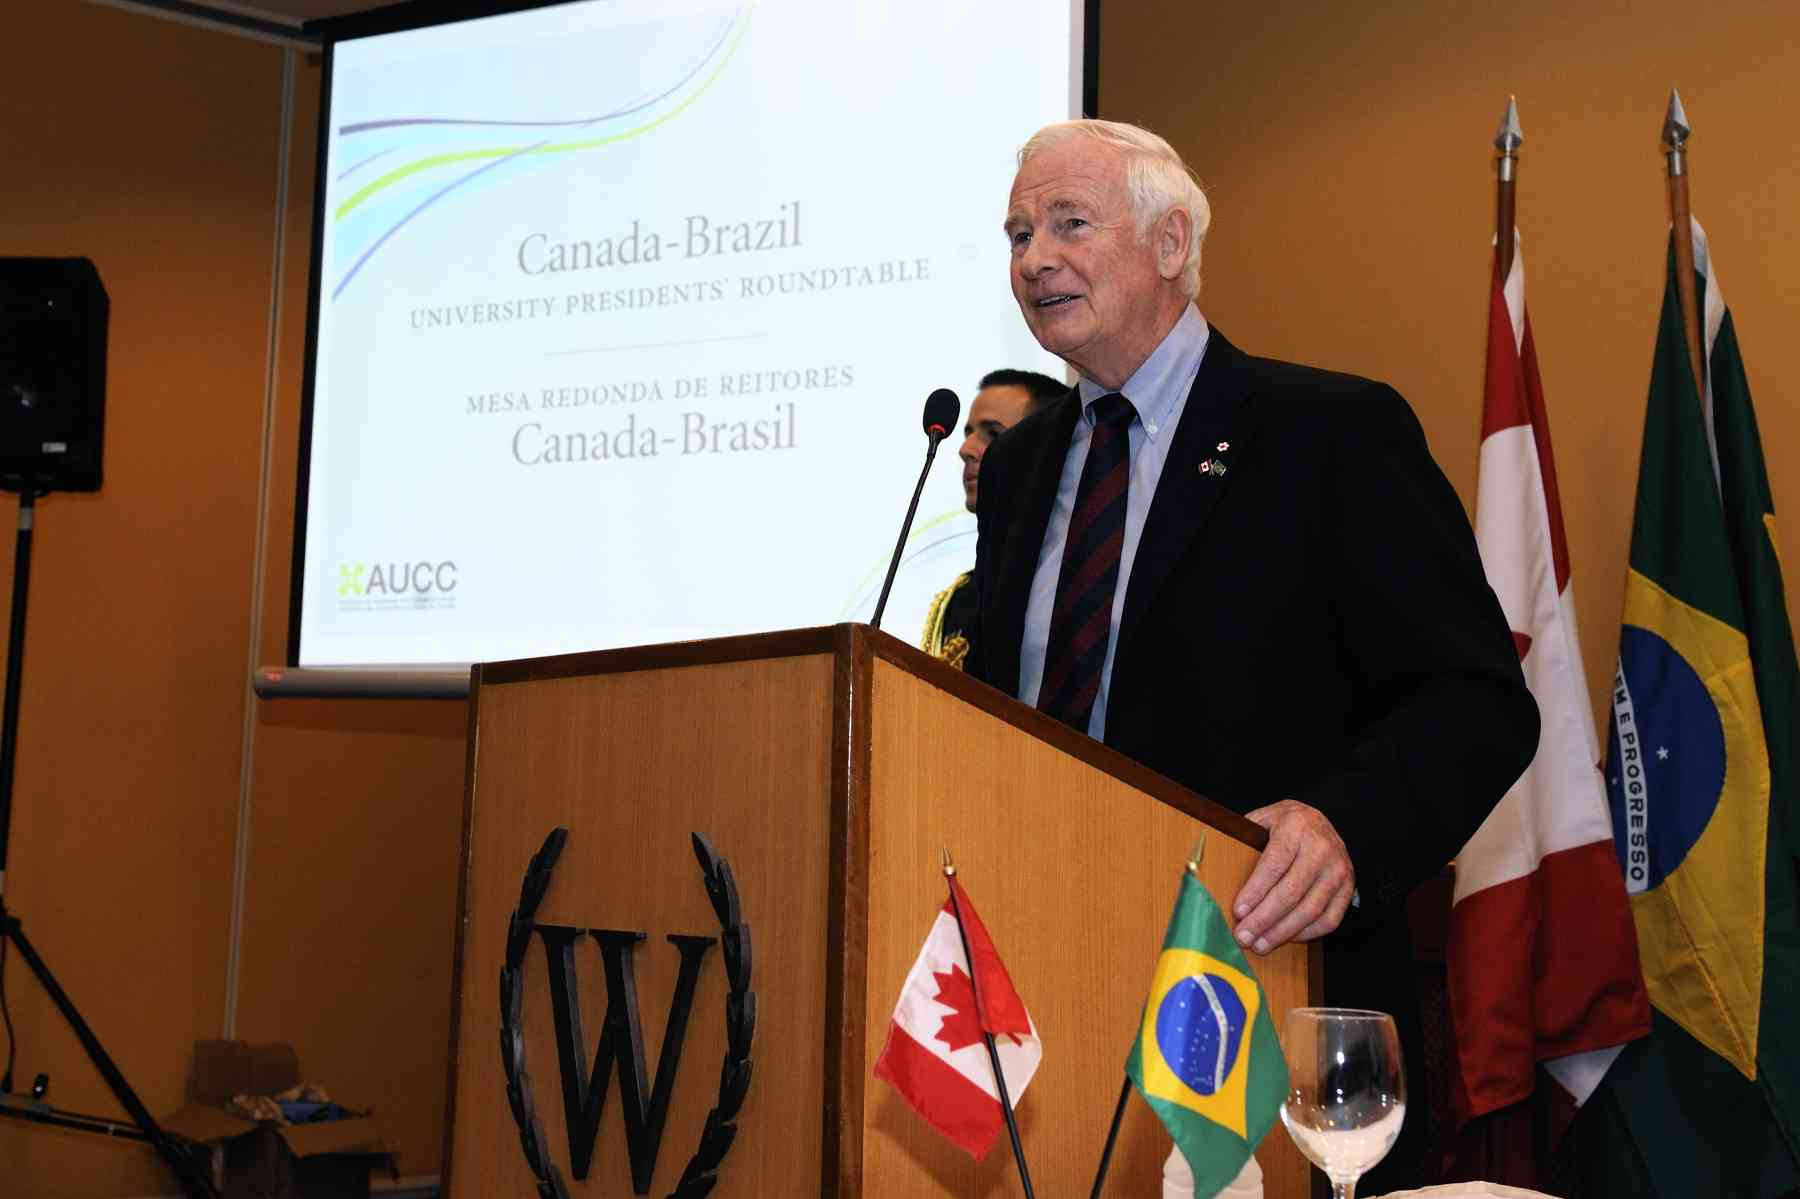 When he addressed the AUCC Canada-Brazil University Presidents' Round Table participants, the Governor General focussed on the importance of partnerships and the internationalization of education to attain a global and interconnected world.